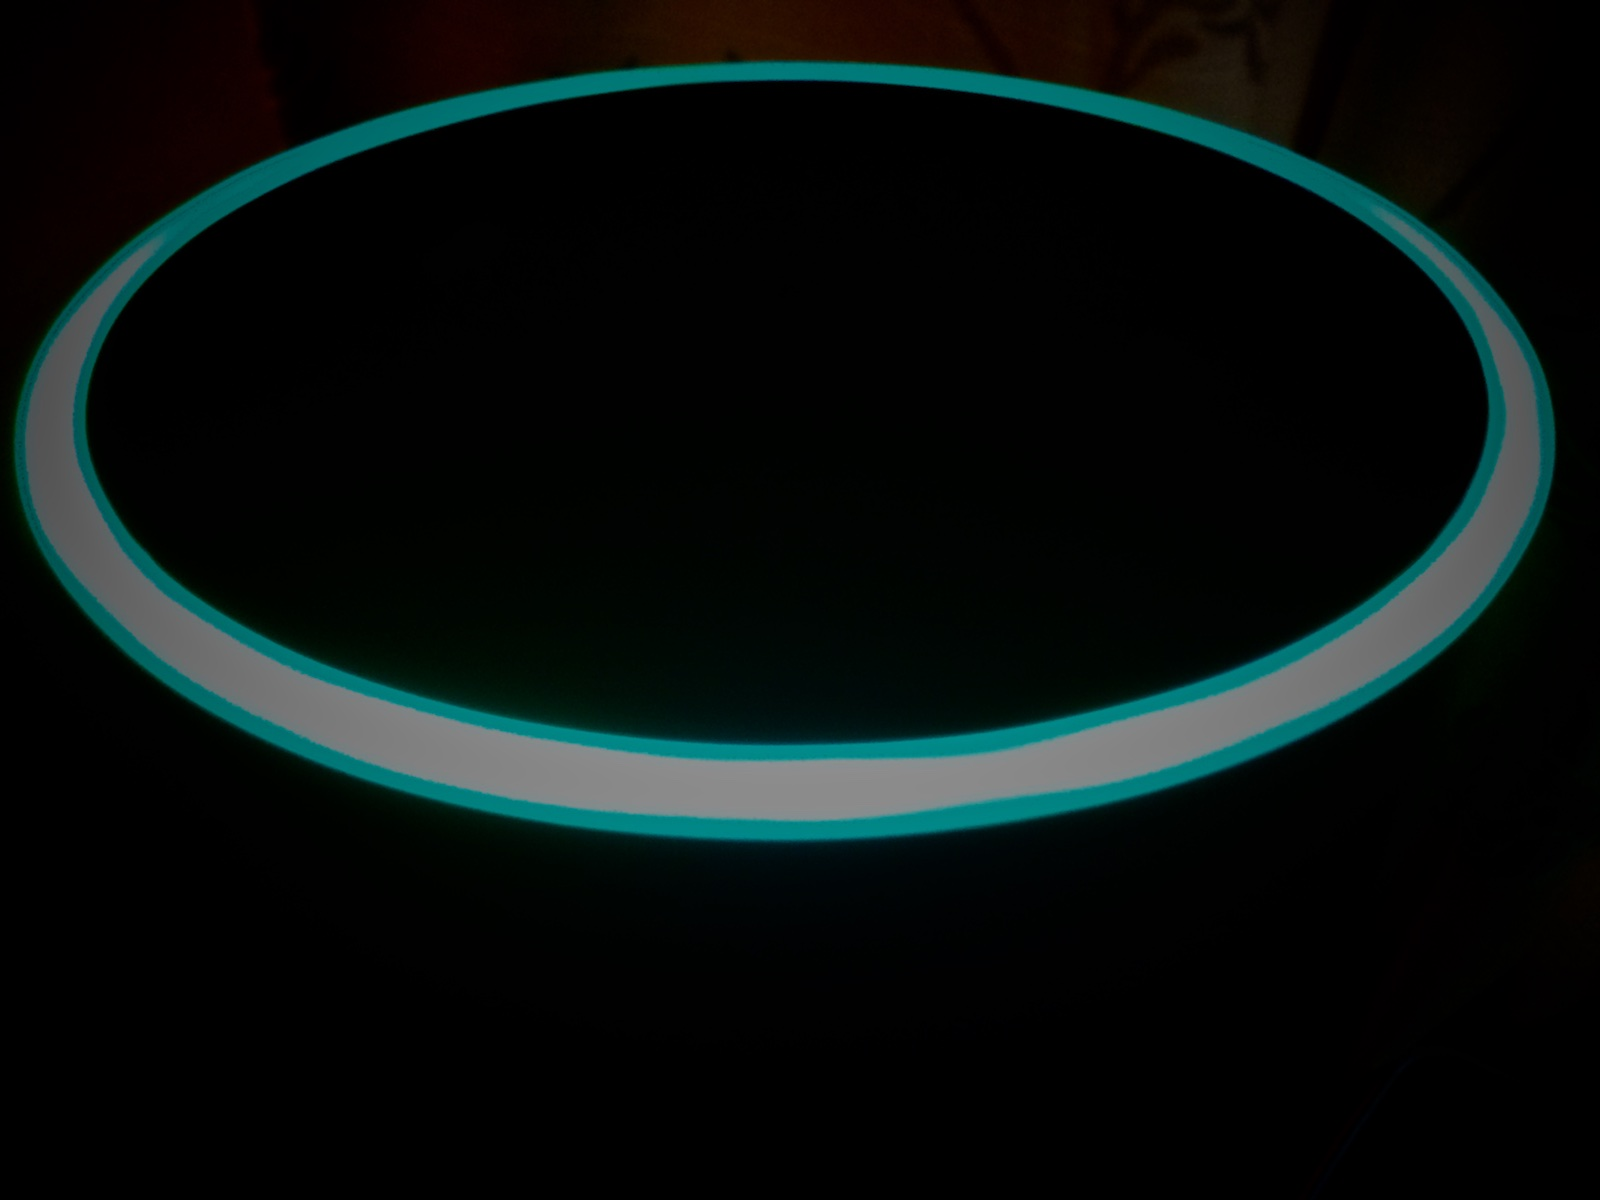 Alexa Skills Development